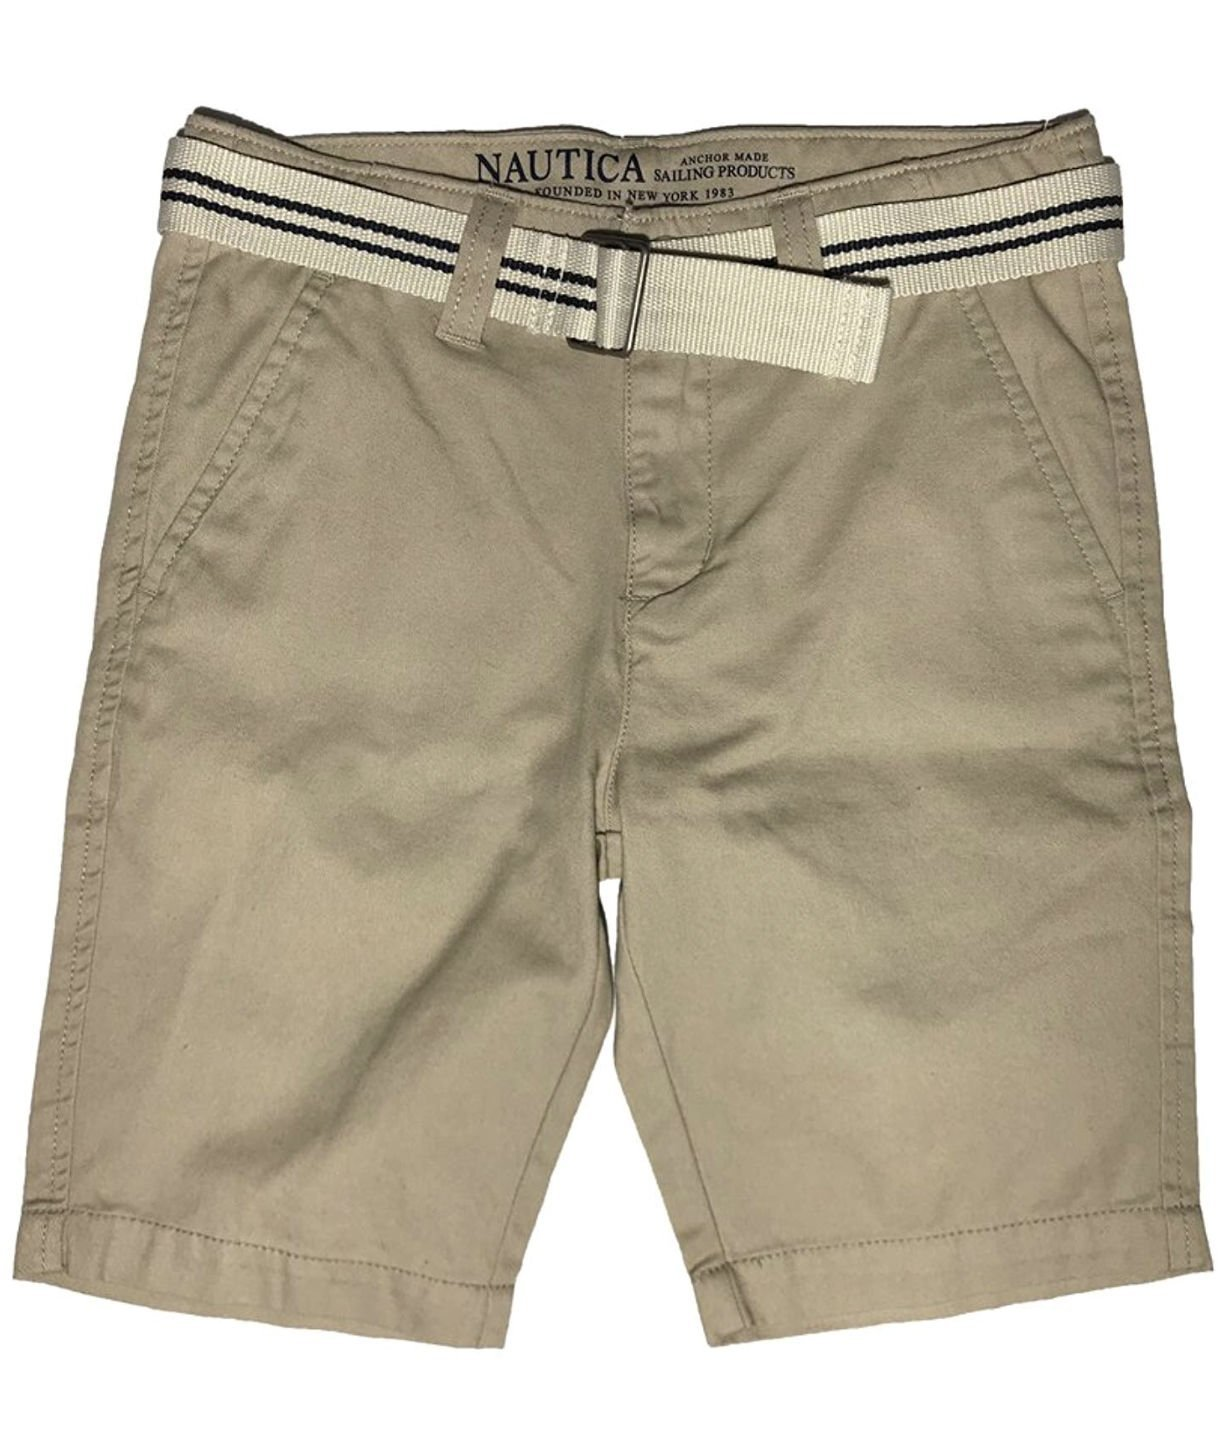 Nautica Boys' Flat Front Belted Shorts (Sand Cove, 8)